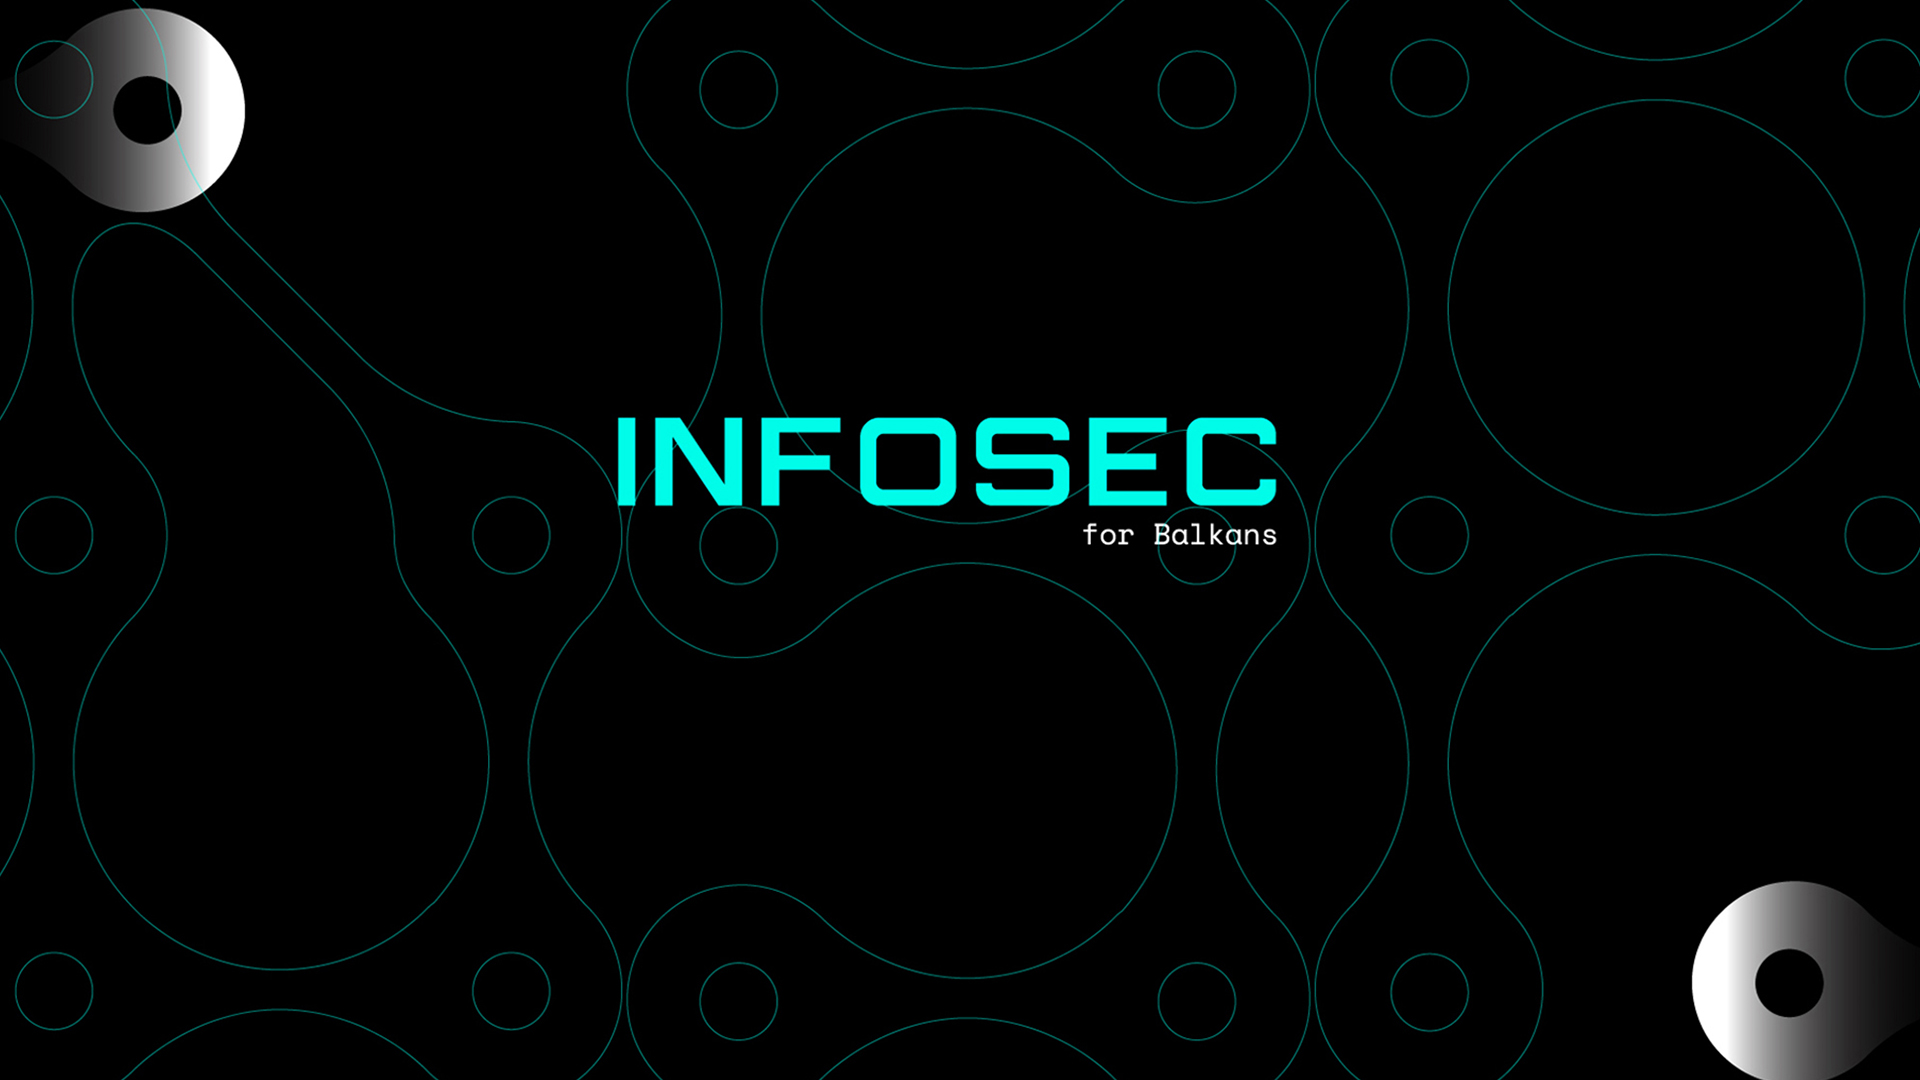 InfoSec Manual for Journalists and Civil Society